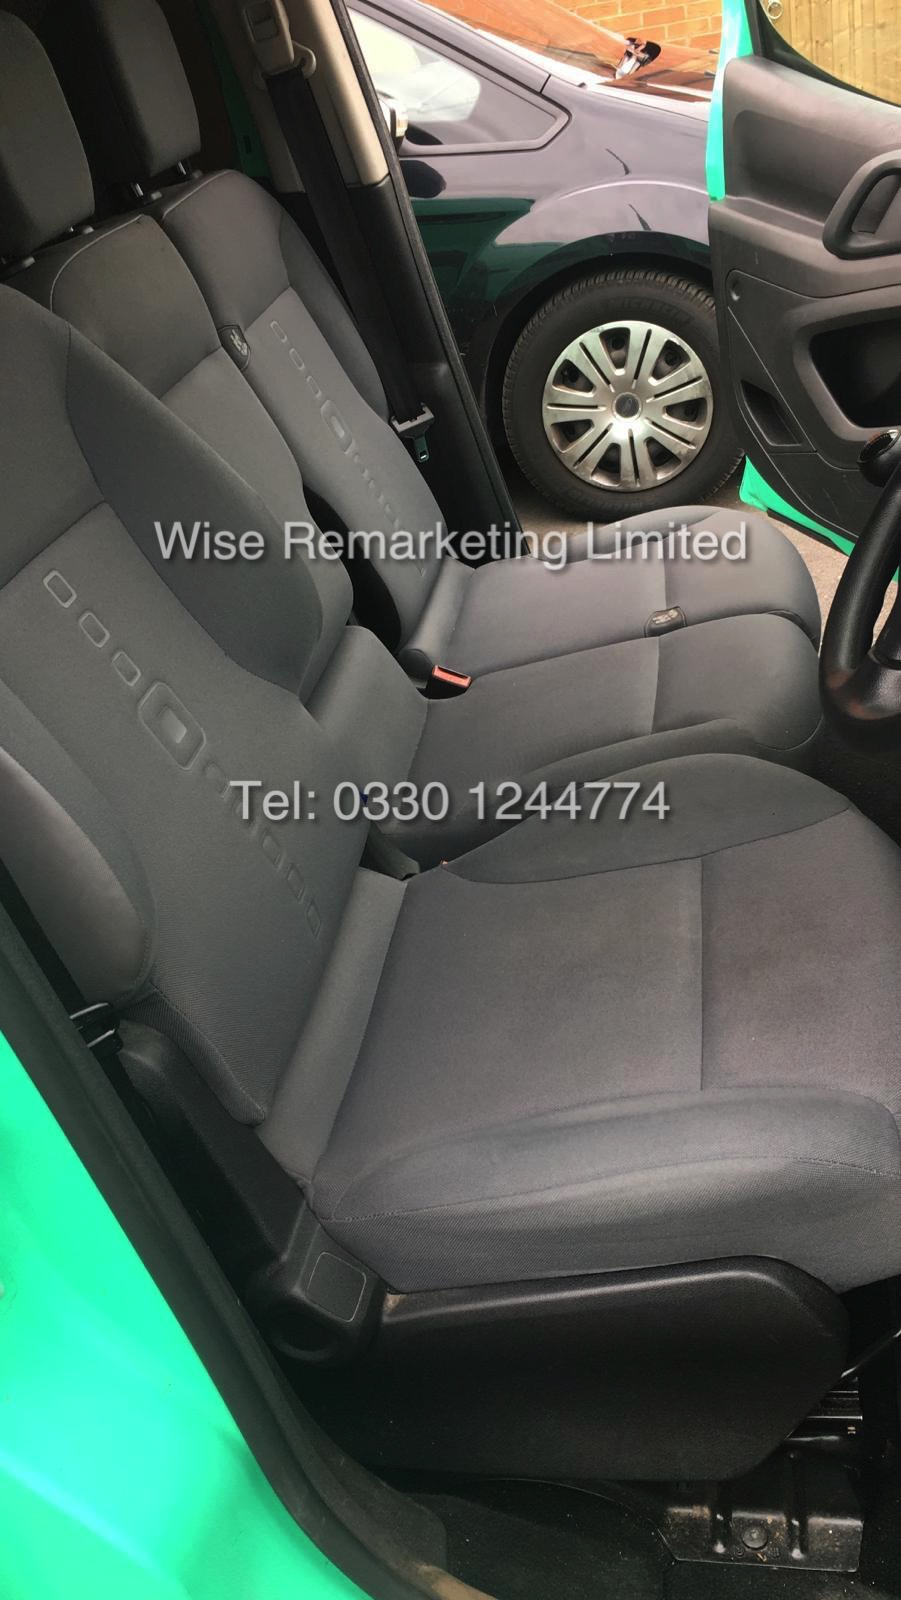 CITROEN BERLINGO 1.6 HDI LX AIRDREAM EDITION *2015 SPEC* - Image 6 of 11